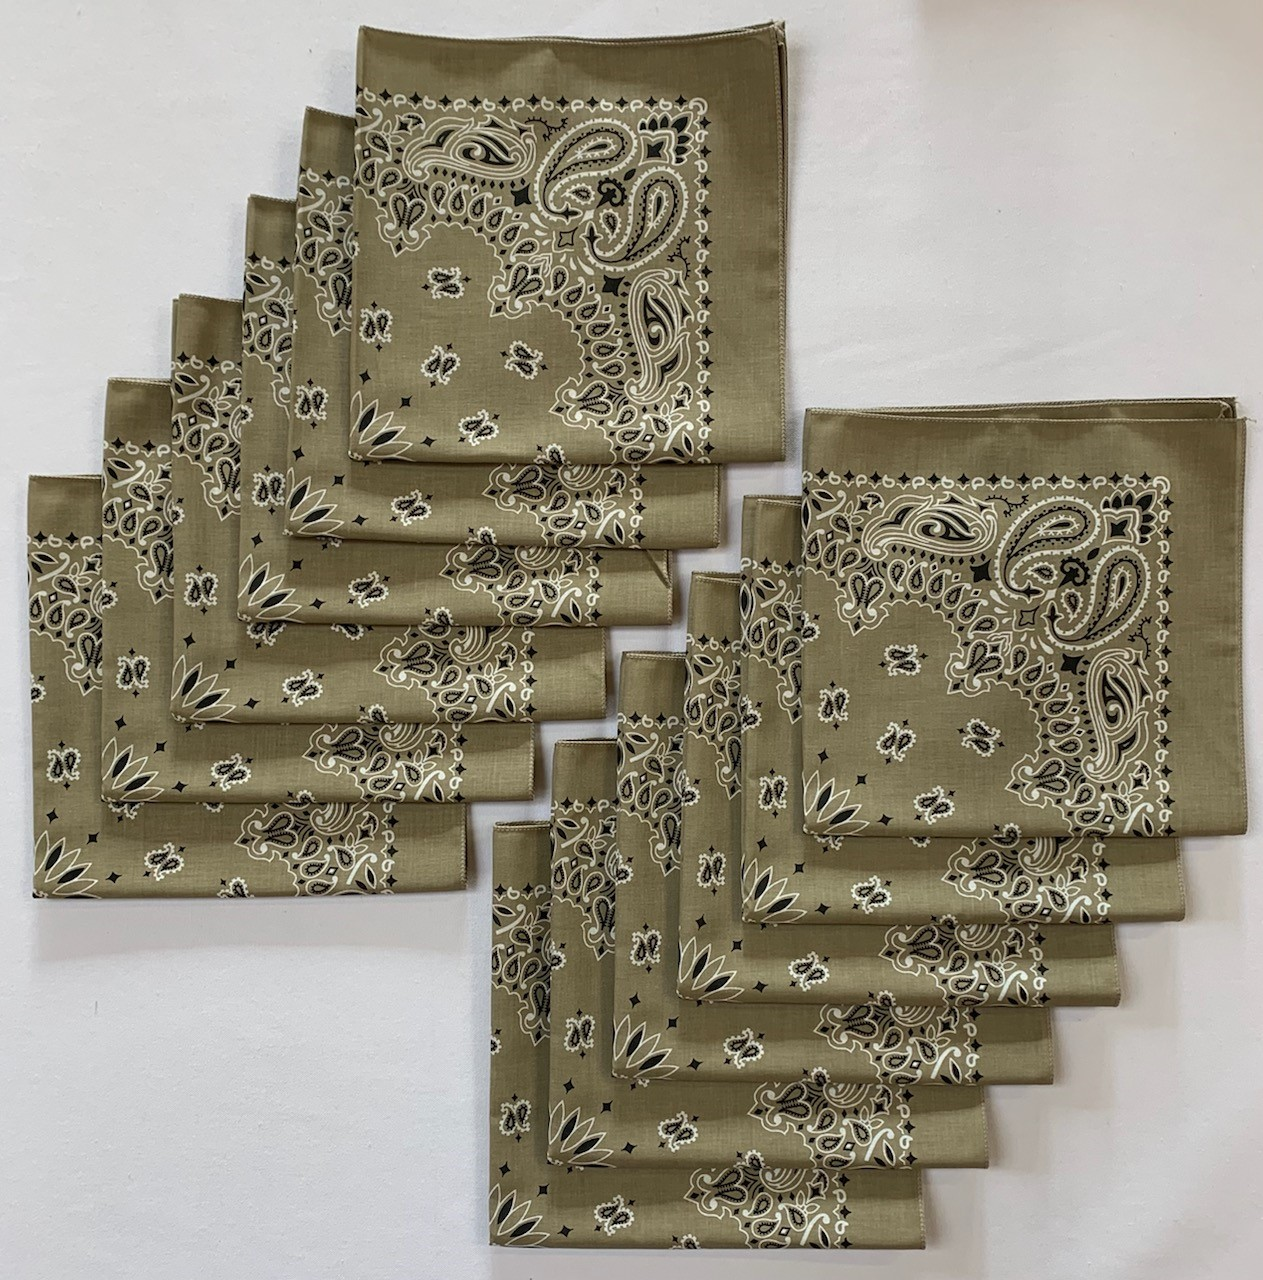 "Made in the USA Beige Paisley Bandanas 12 Pk, 22"" x 22"" Cotton"